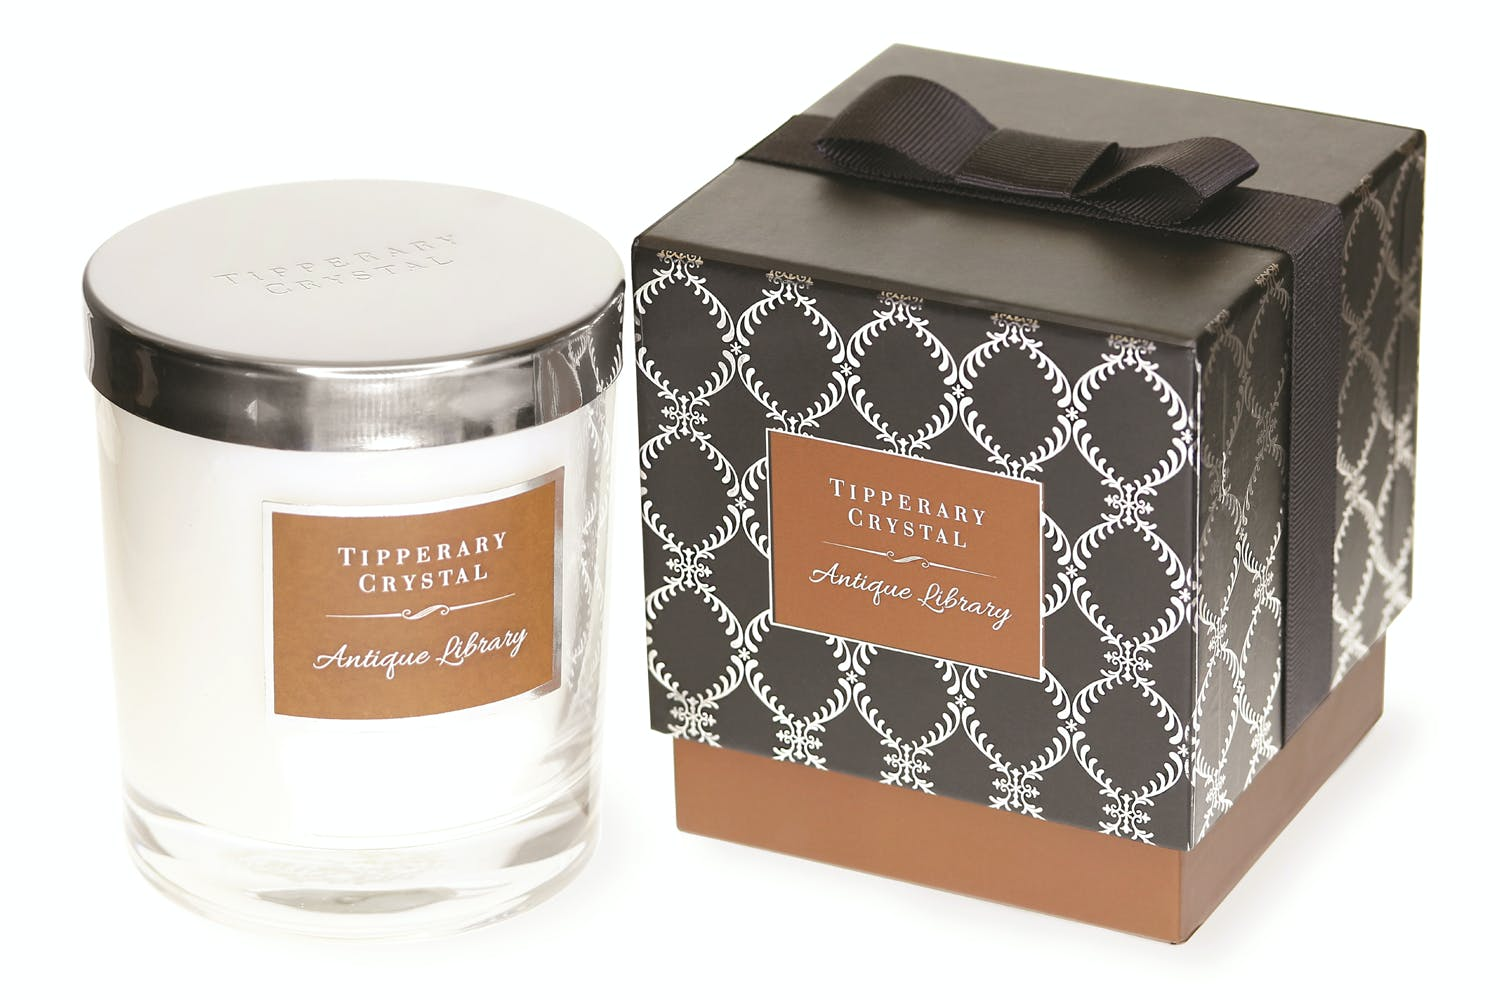 Tipperary Crystal Luxury Candle | Antique Library